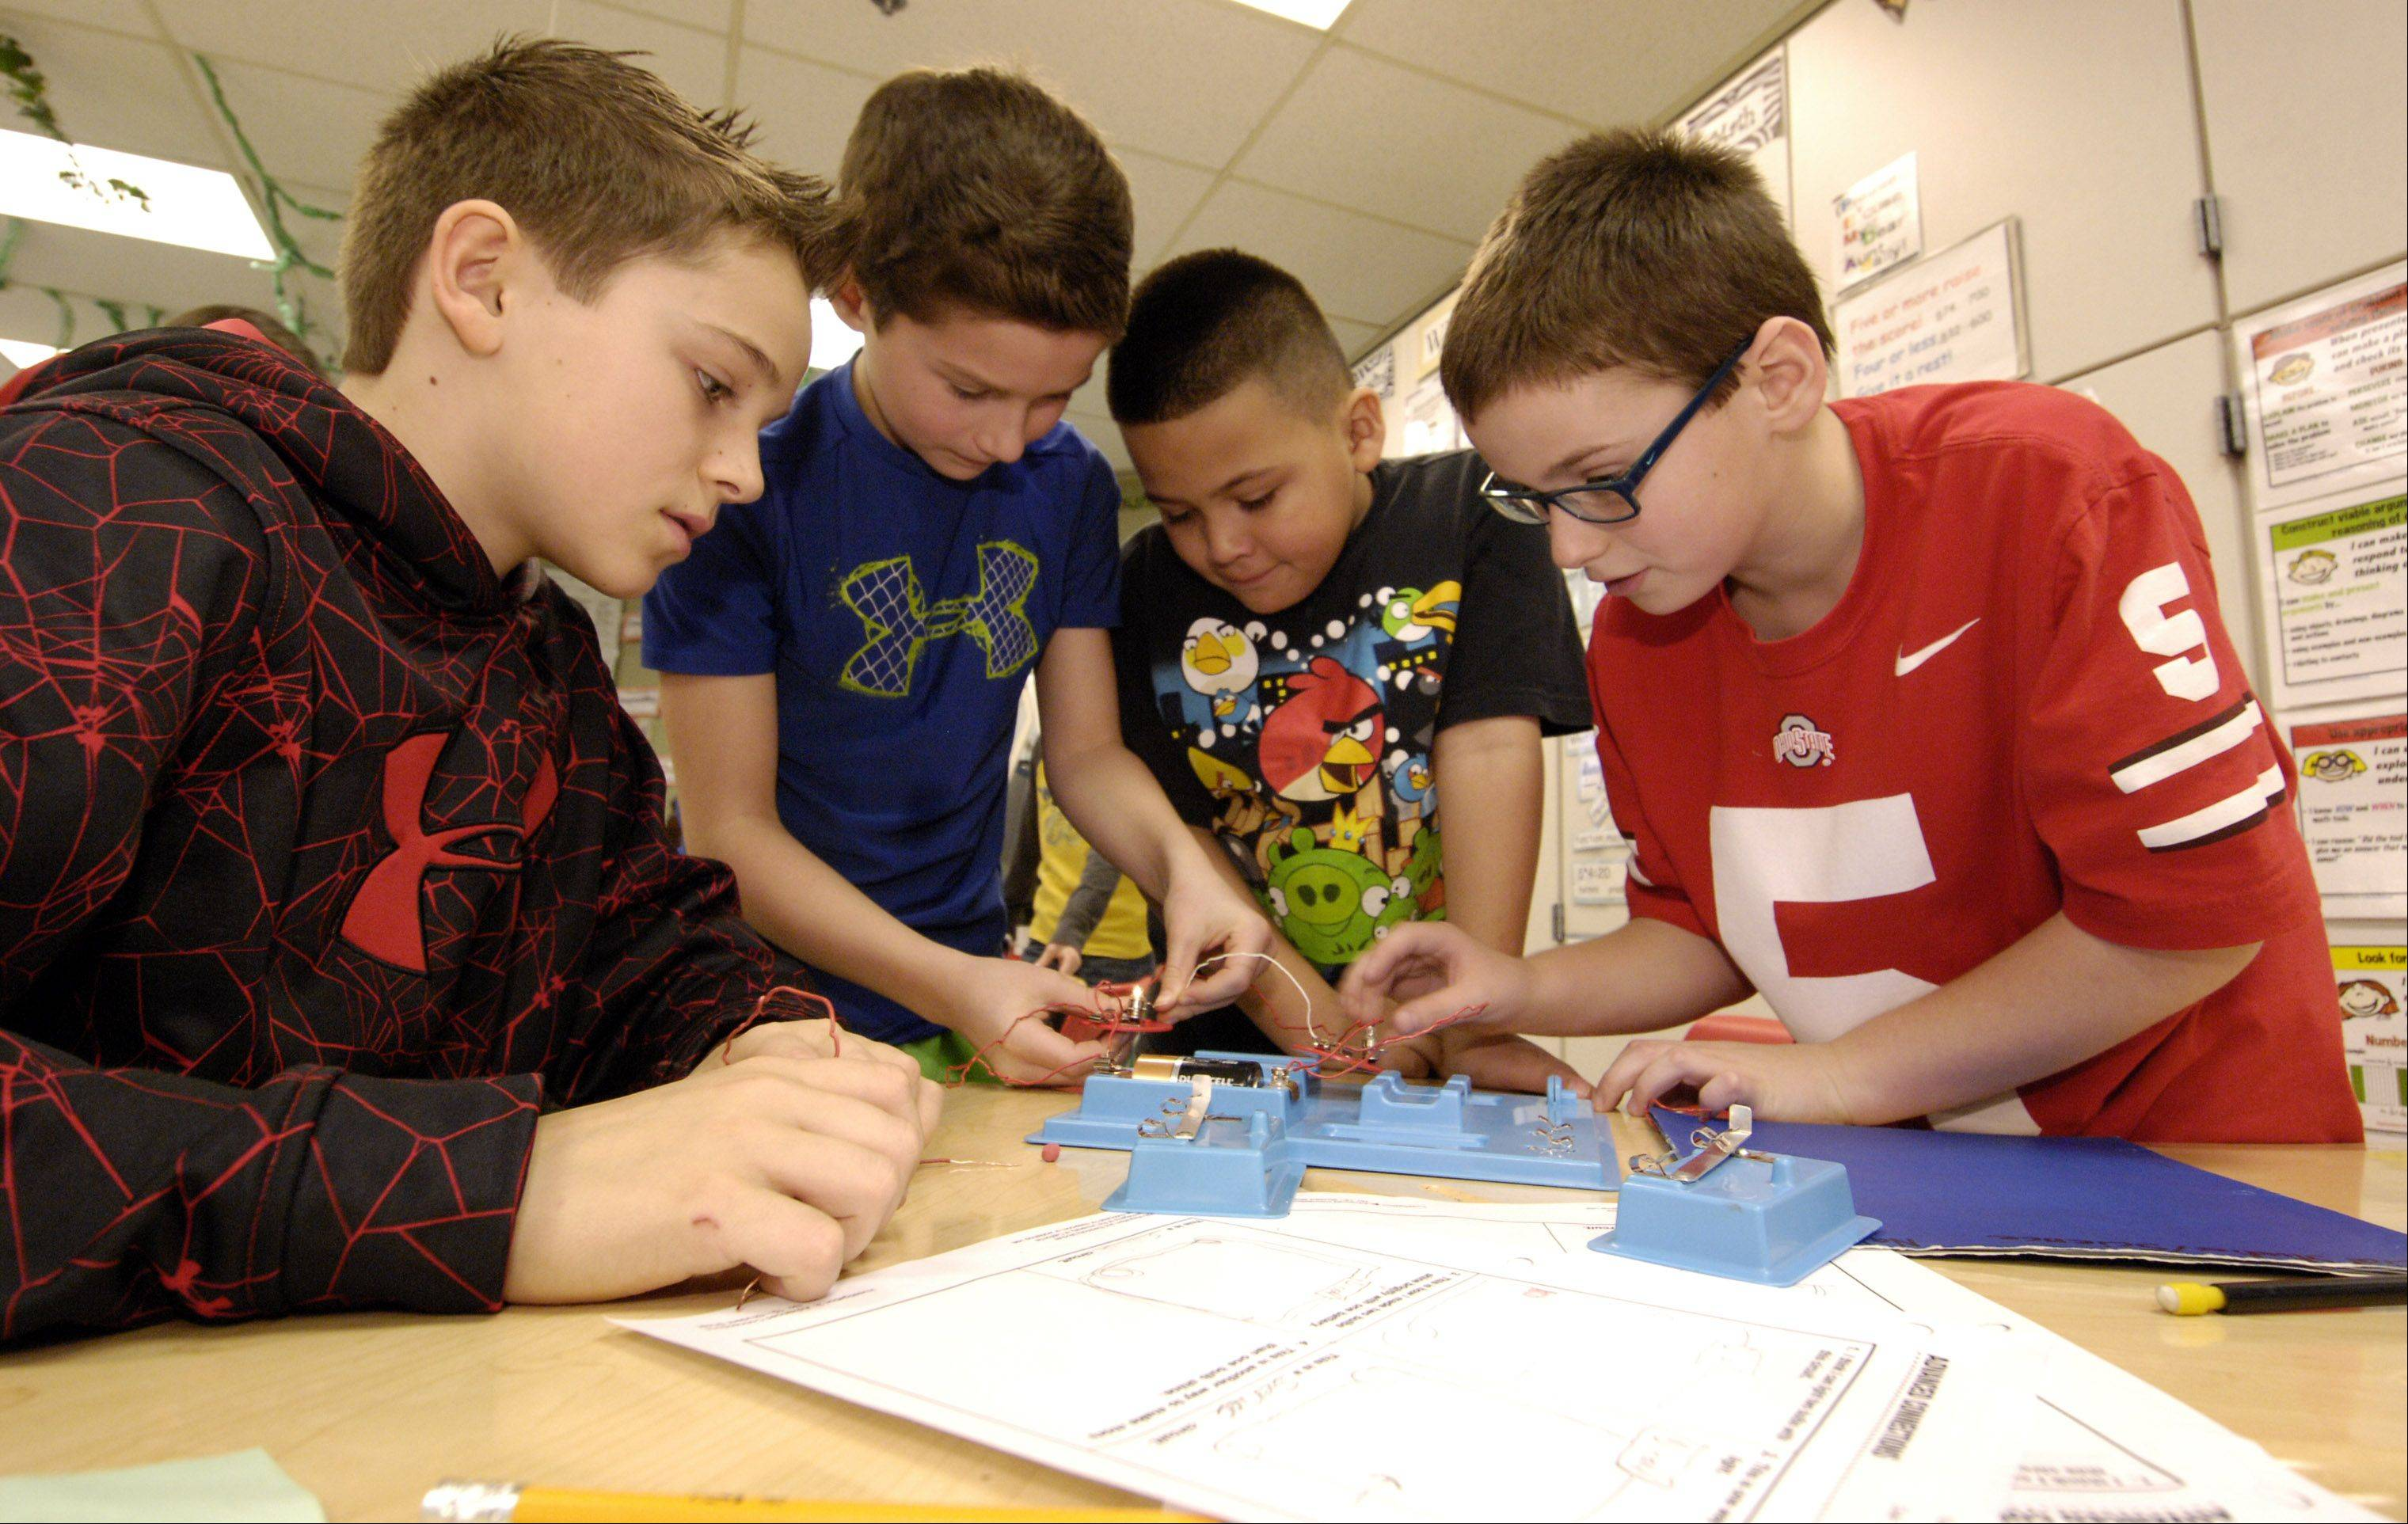 Mark Black/mblack@dailyherald.com ¬ Fourth grade students, Michael Rossi Nathan Navarro, Mario Vences and Luke Sullivan work on their an electricity science project at Churchill School. Glen Ellyn School District 41 is proposing to combine classes as part of the Think Tank initiative, in an effort to better focus on science, math and literacy instruction.